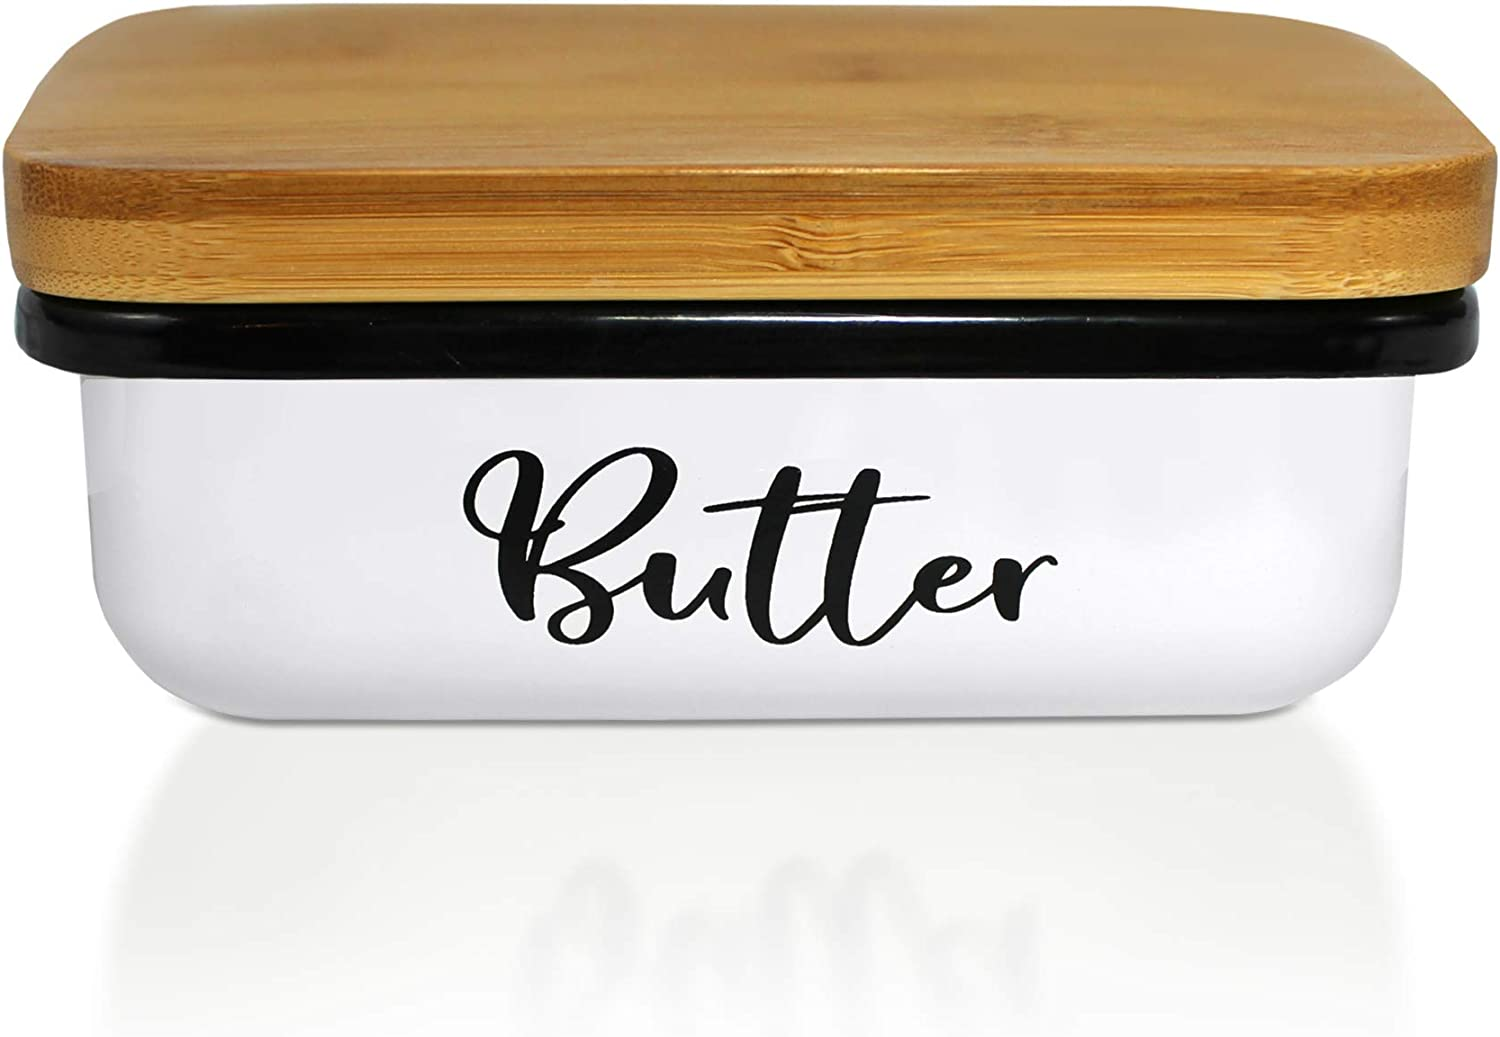 Butter Dish-Modern Farmhouse Kitchen Decor-Butter Dish With Lid-Butter Dish White-Large Butter Keeper Container With Bamboo Lid-Butter Dishes With Covers-Vintage White Butter Dish by Home Acre Designs